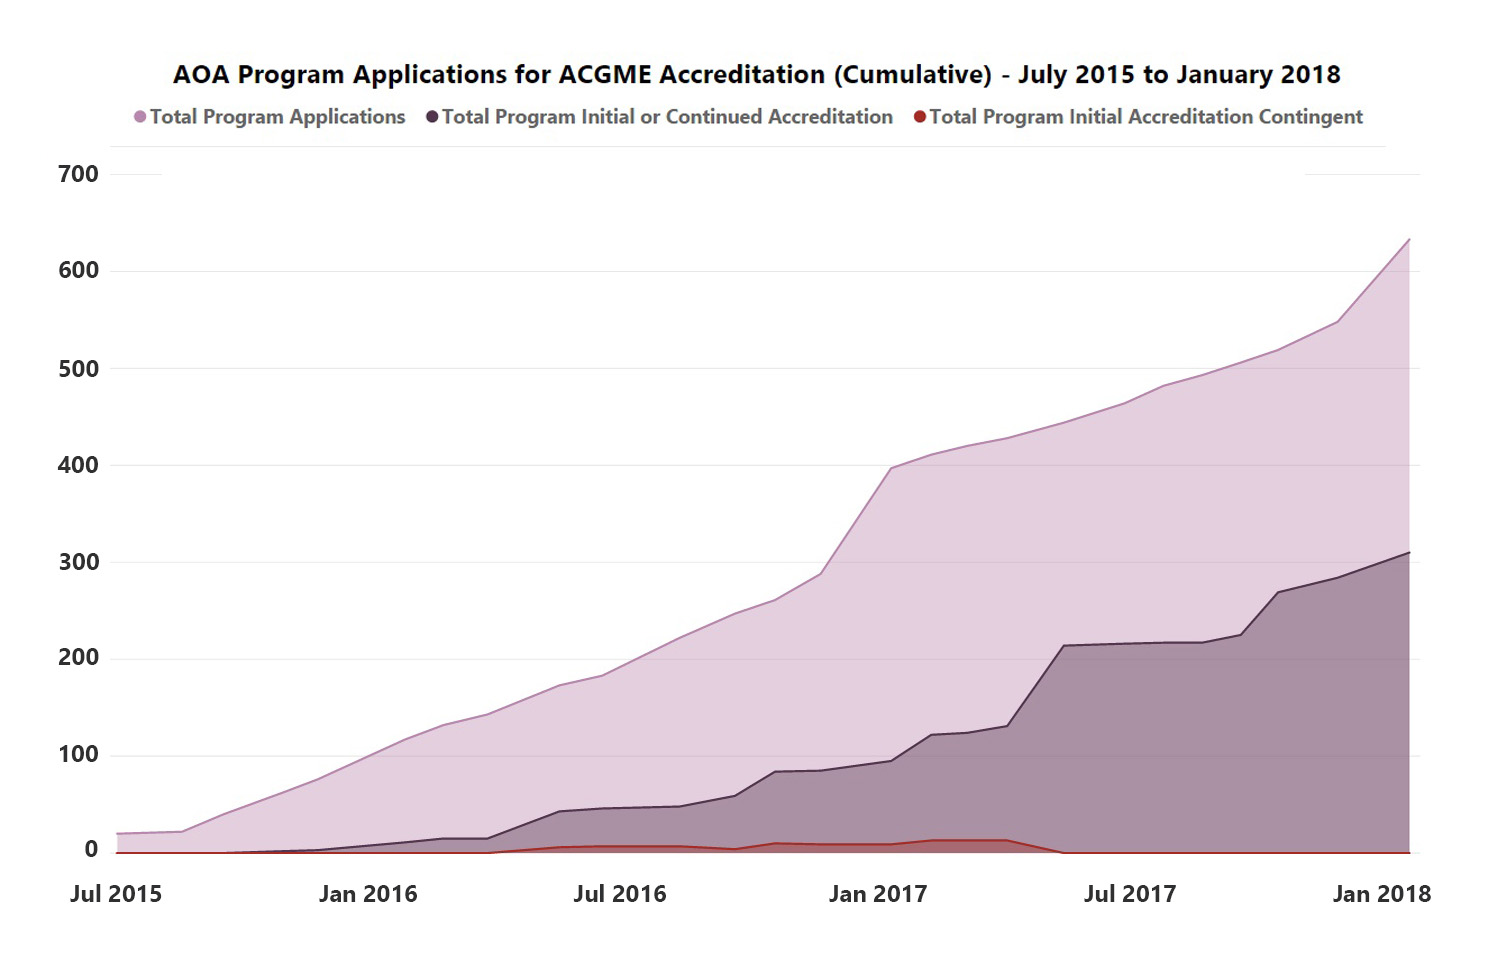 AOA Program Applications for ACGME Accreditation - July 2015 to January 2018